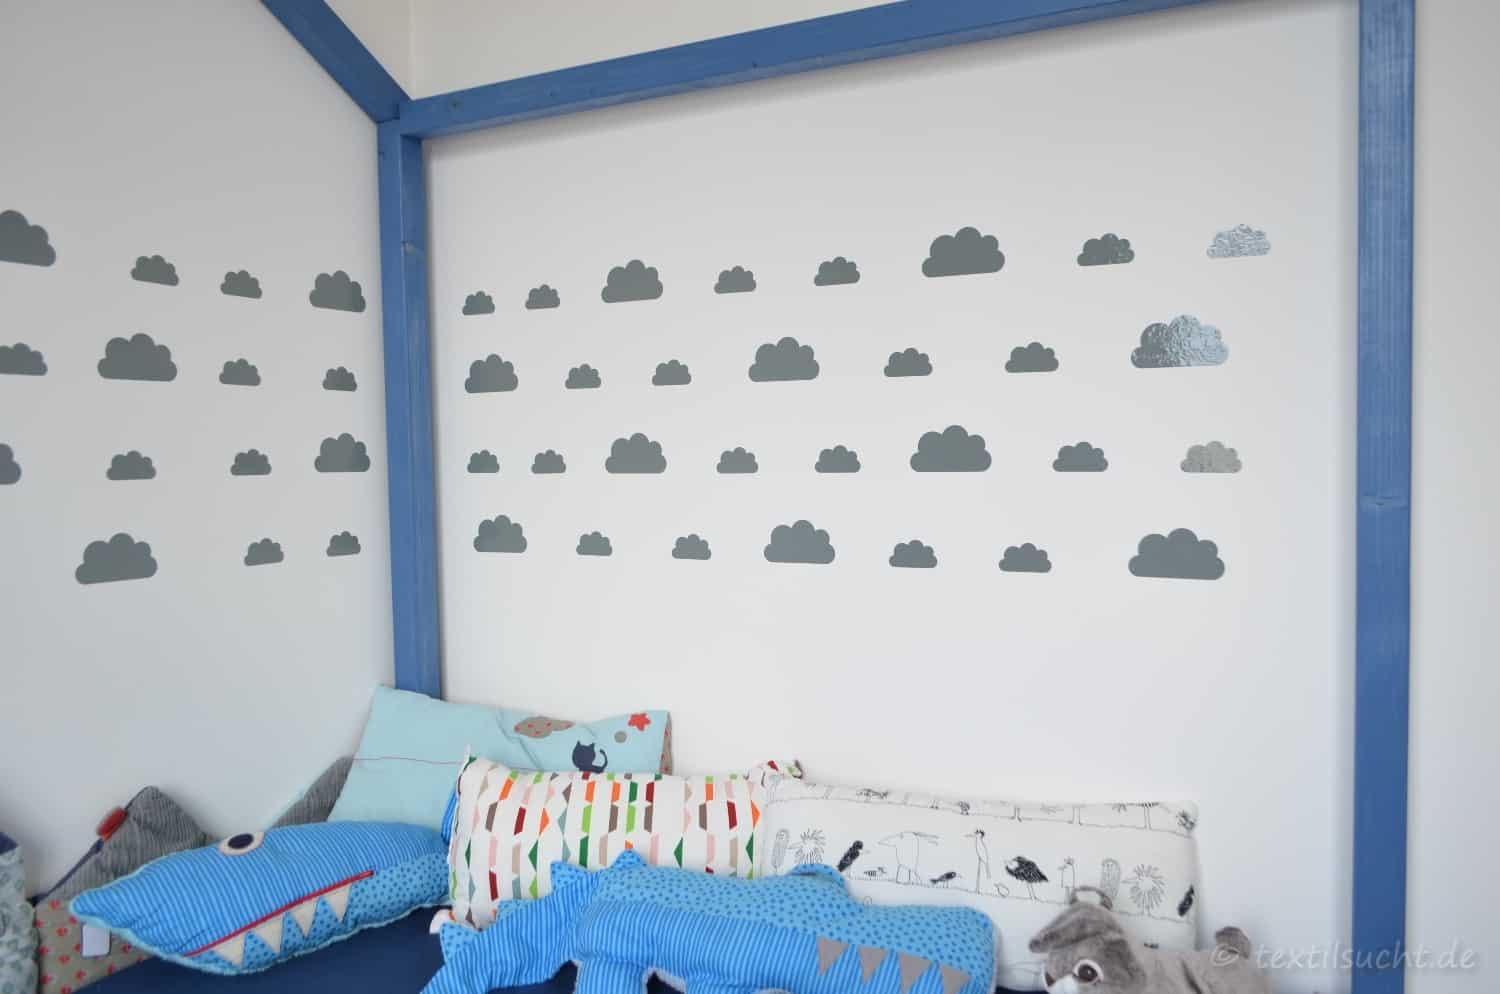 wandtattoo f r unser neues kinderzimmer textilsucht. Black Bedroom Furniture Sets. Home Design Ideas